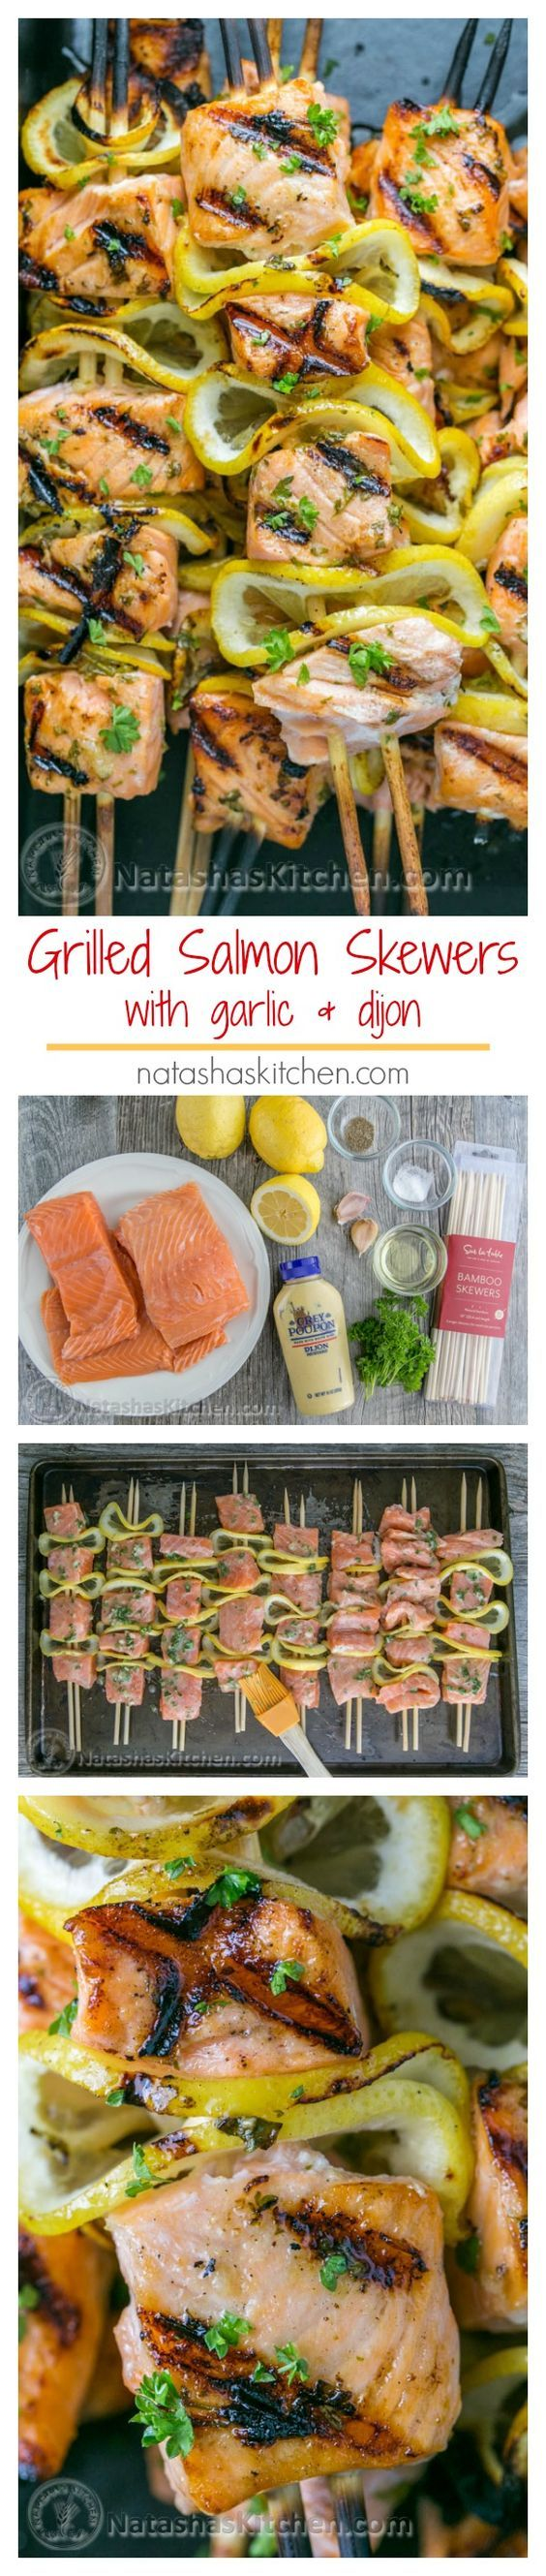 Grilled Salmon Skewers with Garlic and Dijon Recipe plus 24 more of the most pinned fish recipes